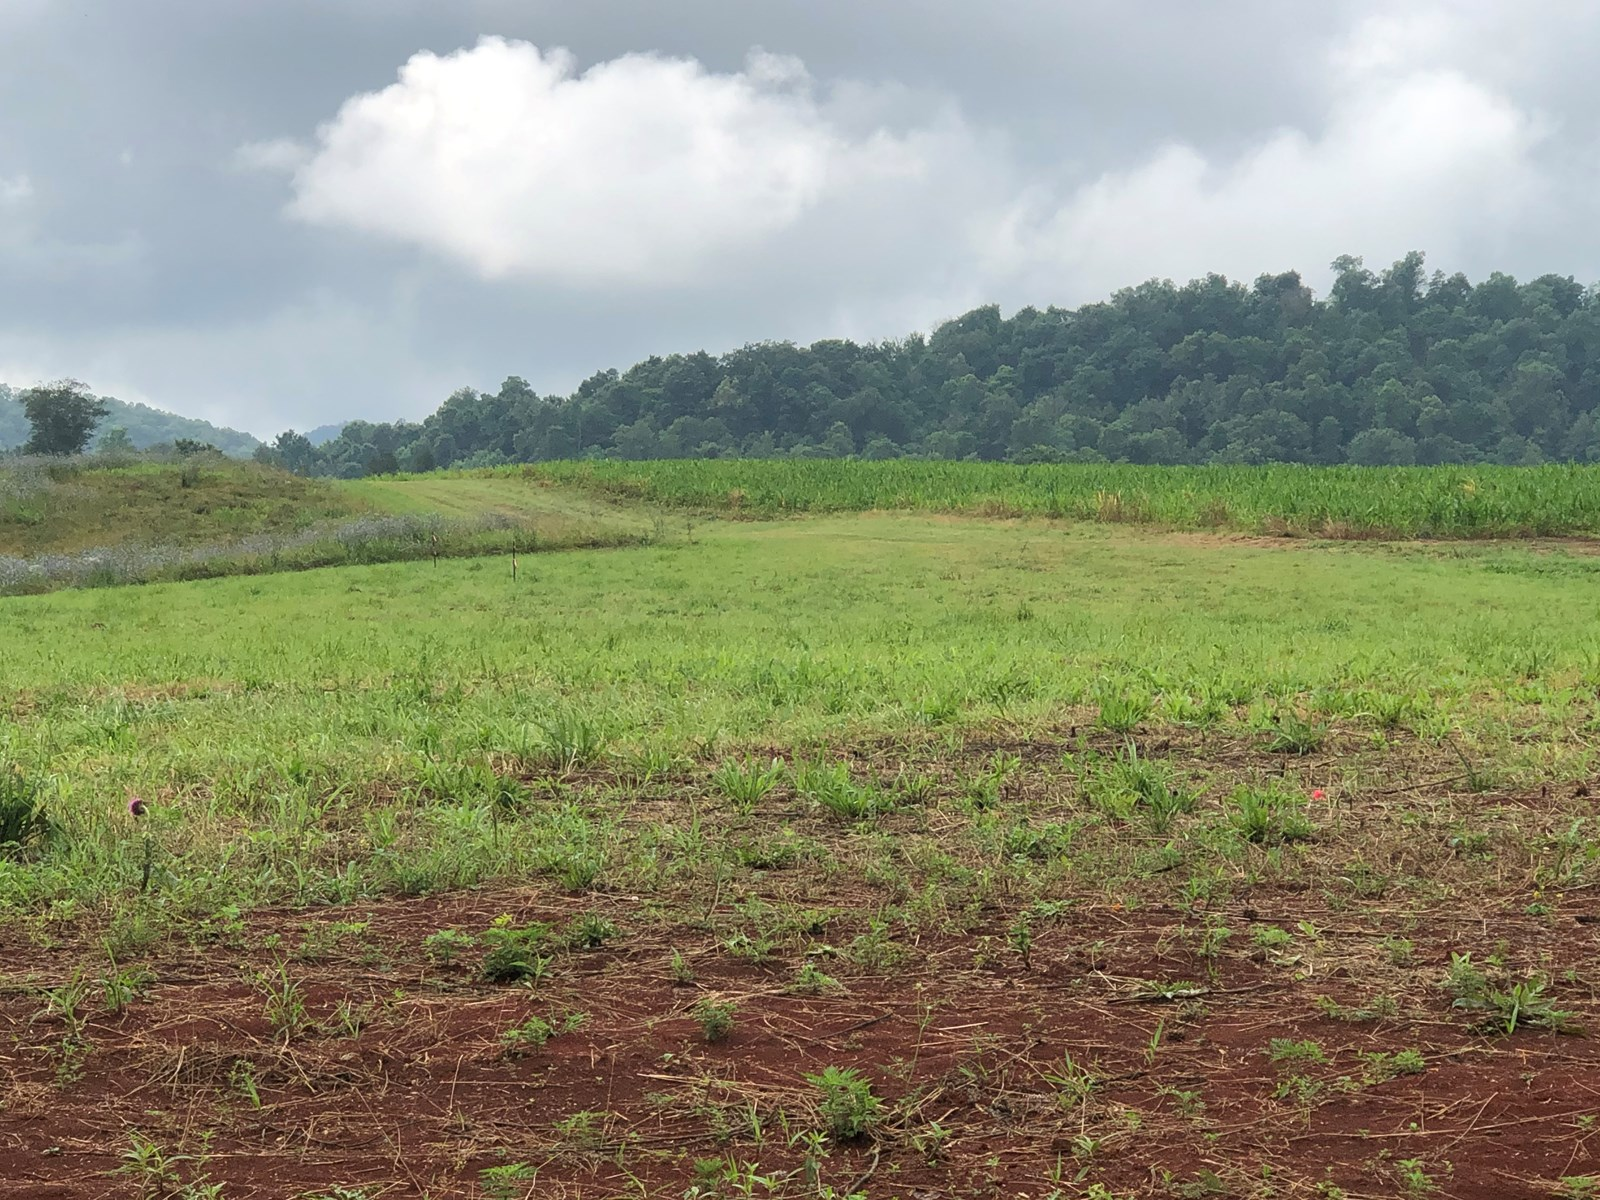 .78 Acres Unrestricted Land in Rogersville, Tn For Sale